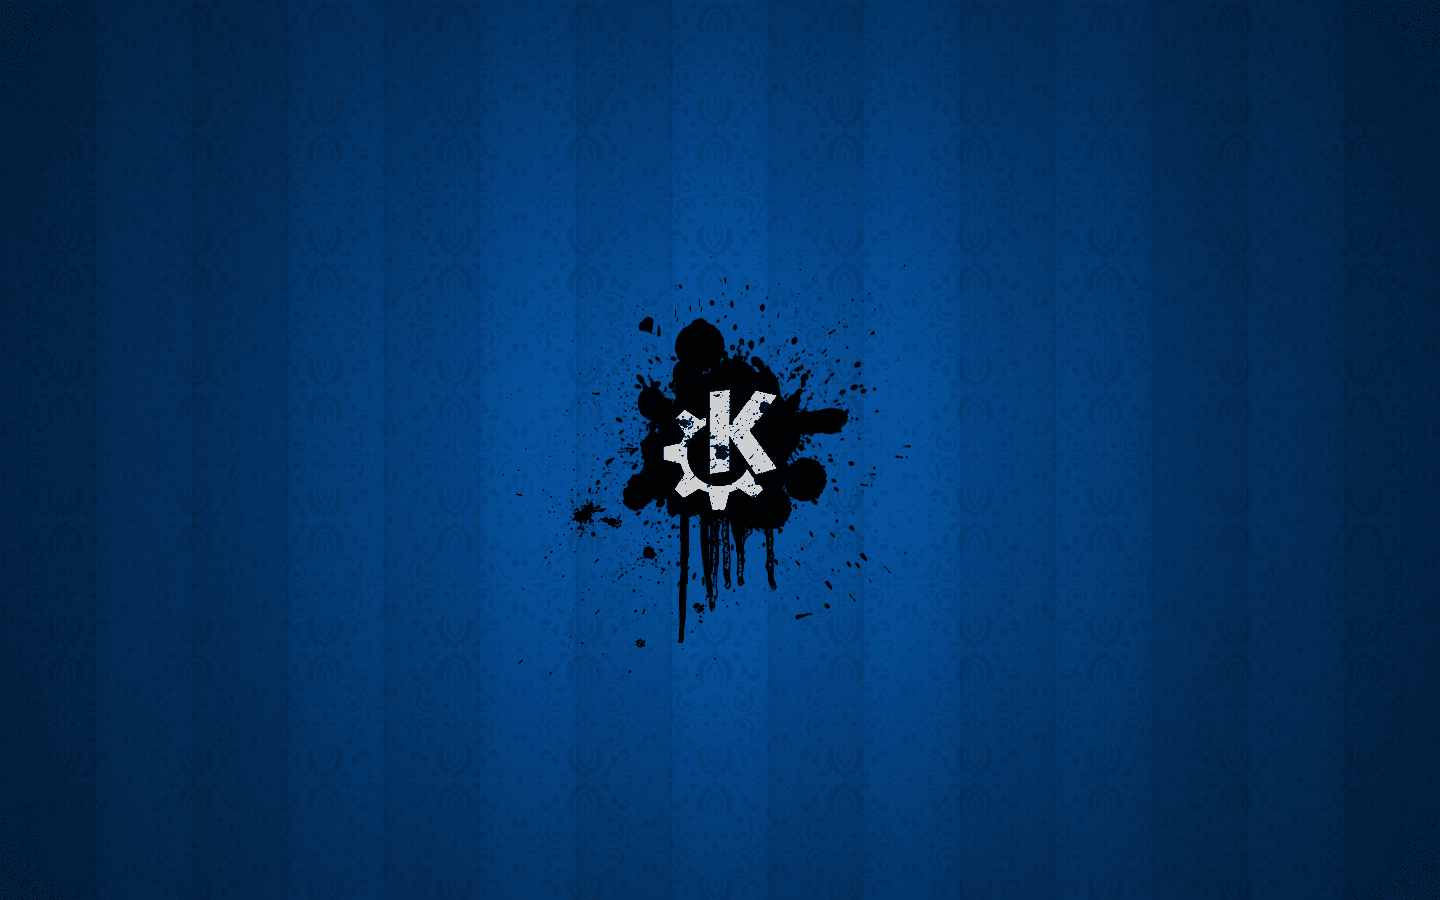 kde_wallpaper_1